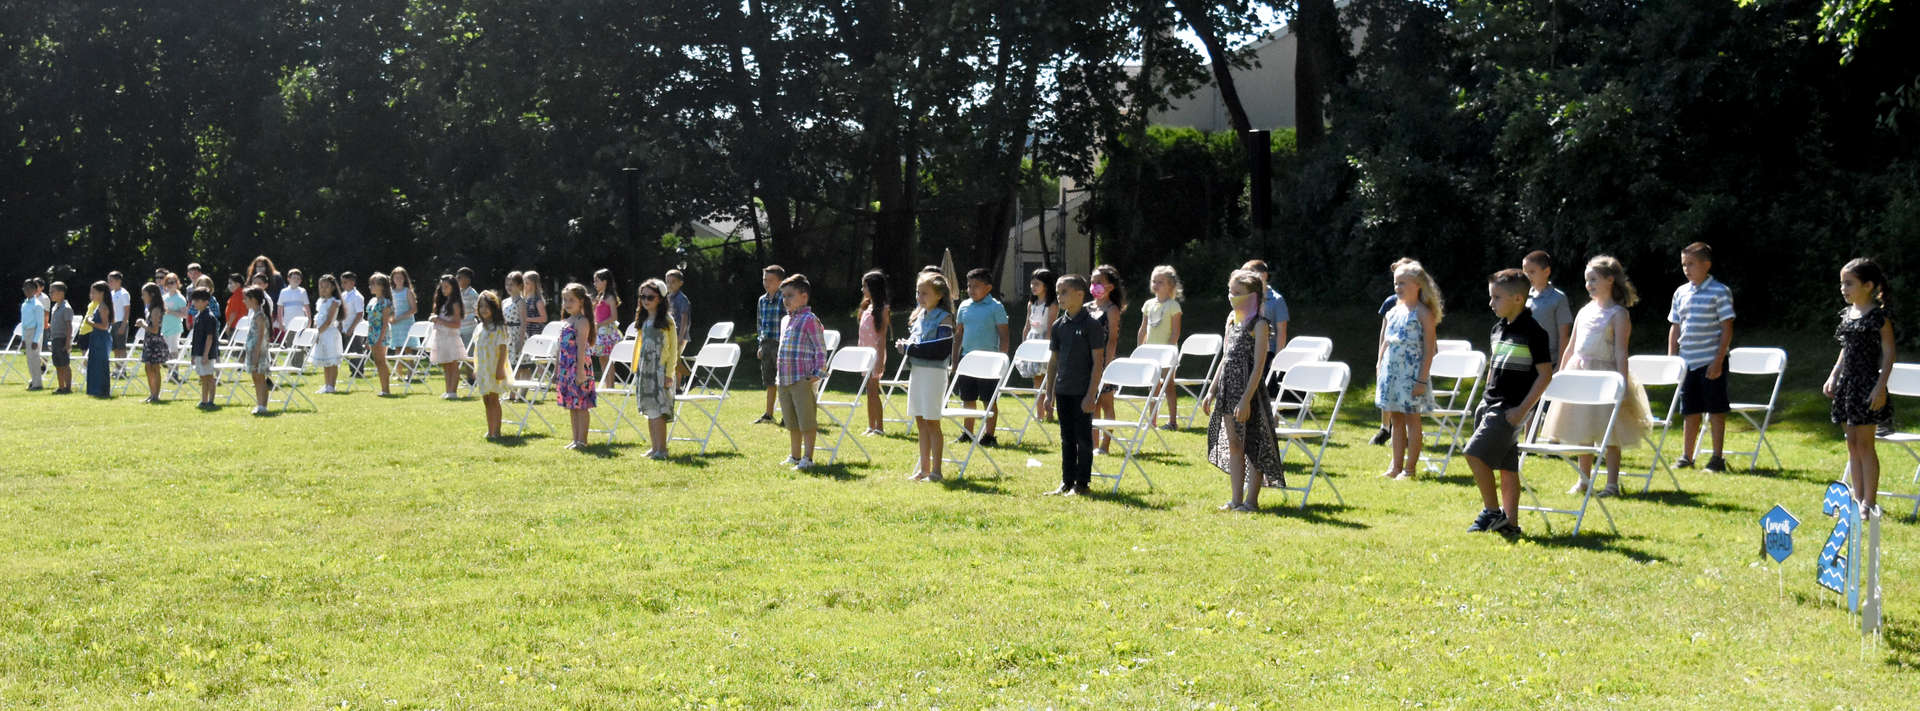 Students lined up in front of rows of chairs at graduation ceremony.